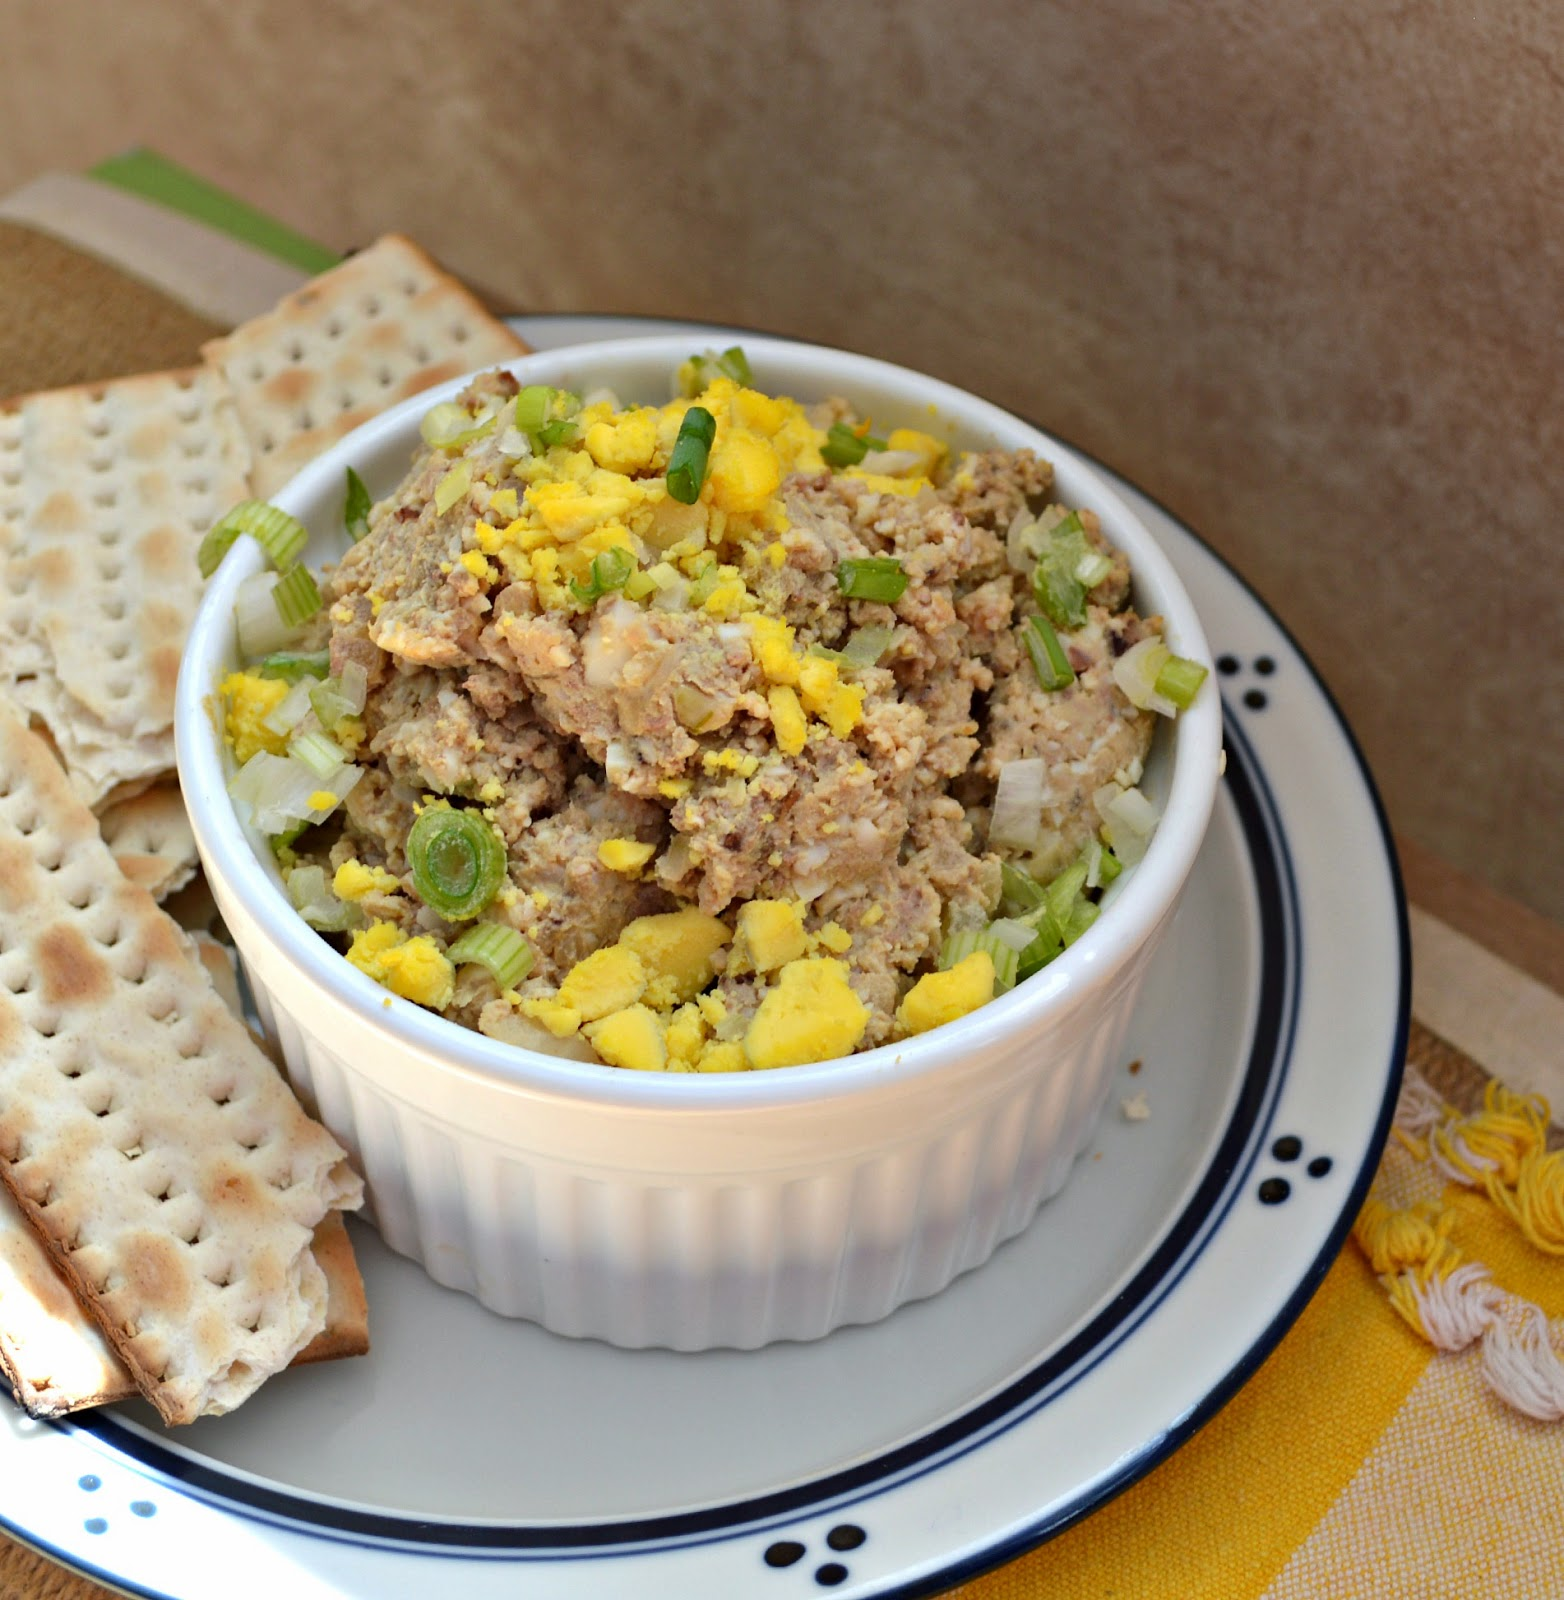 Chopped Liver might not sound good but honestly it is the best. Though I make it just a few times a year and it is basically liver, hard boiled eggs and onion, it is divine. Trust me on this! #Jewishrecipes #choppedliver #appetizers www.thisishowicook.com